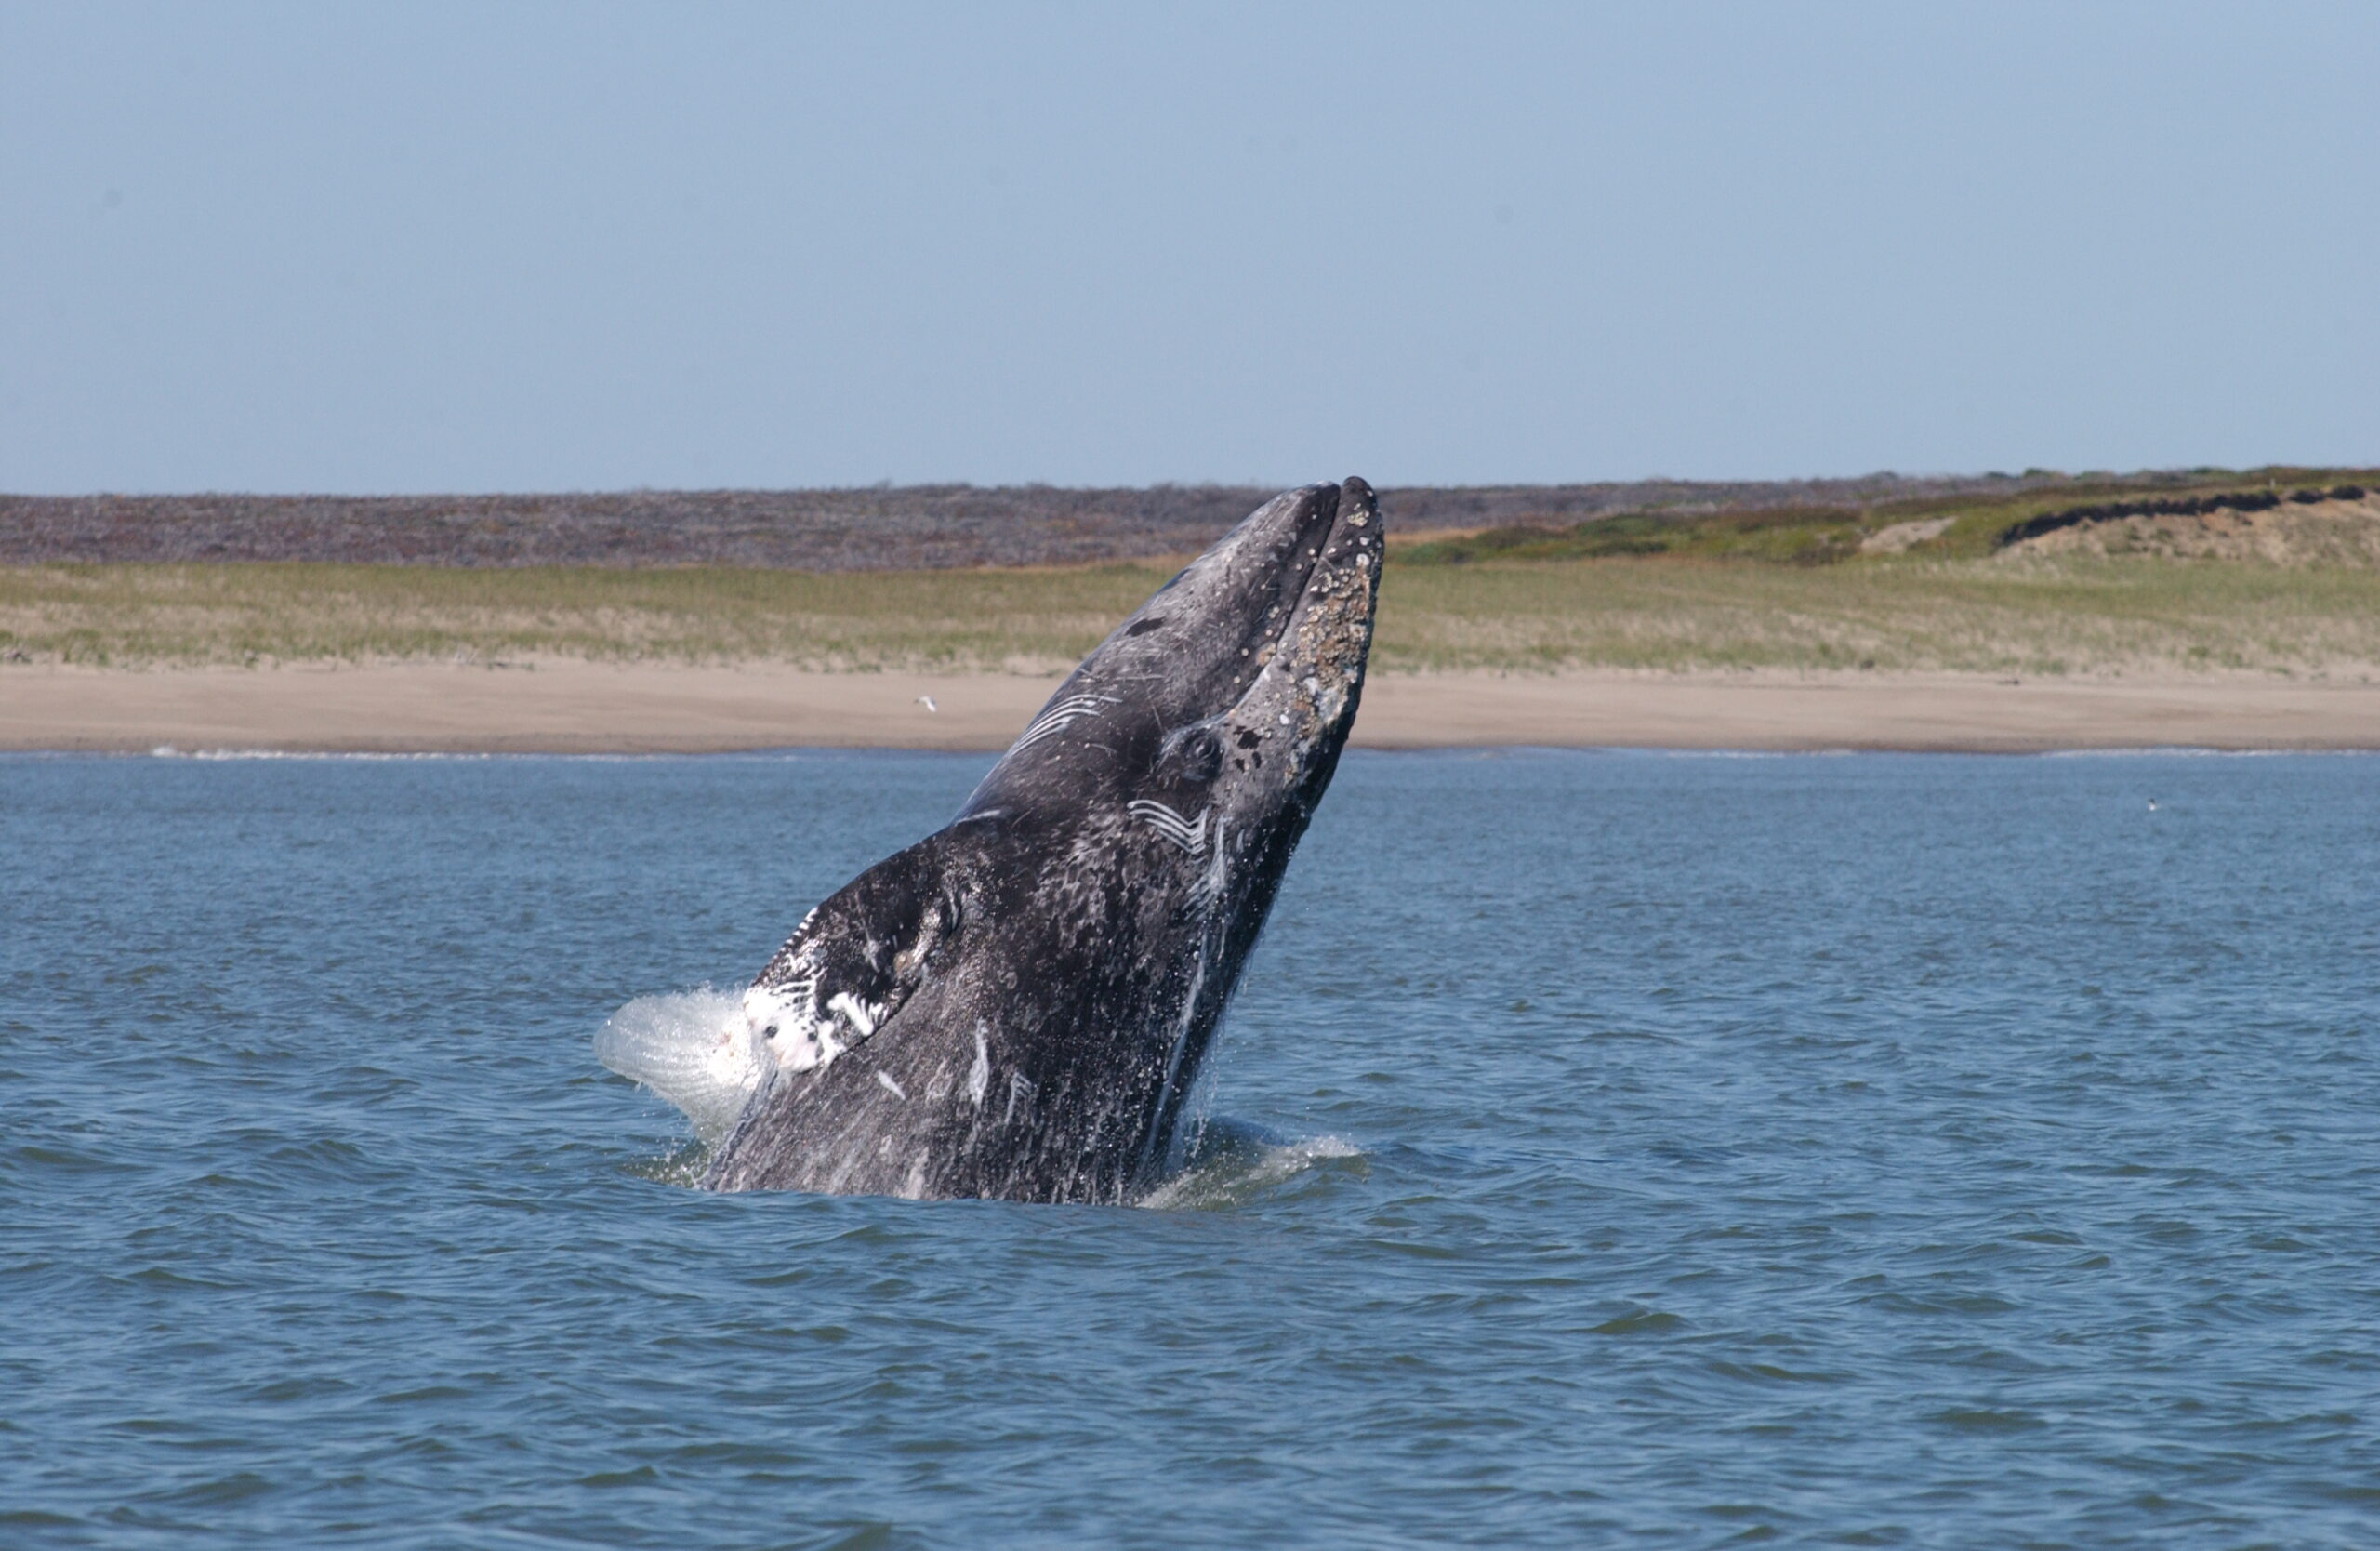 A gray whale's head and flippers are visible as it leaps out of the water in front of a sandy beach and green hills.